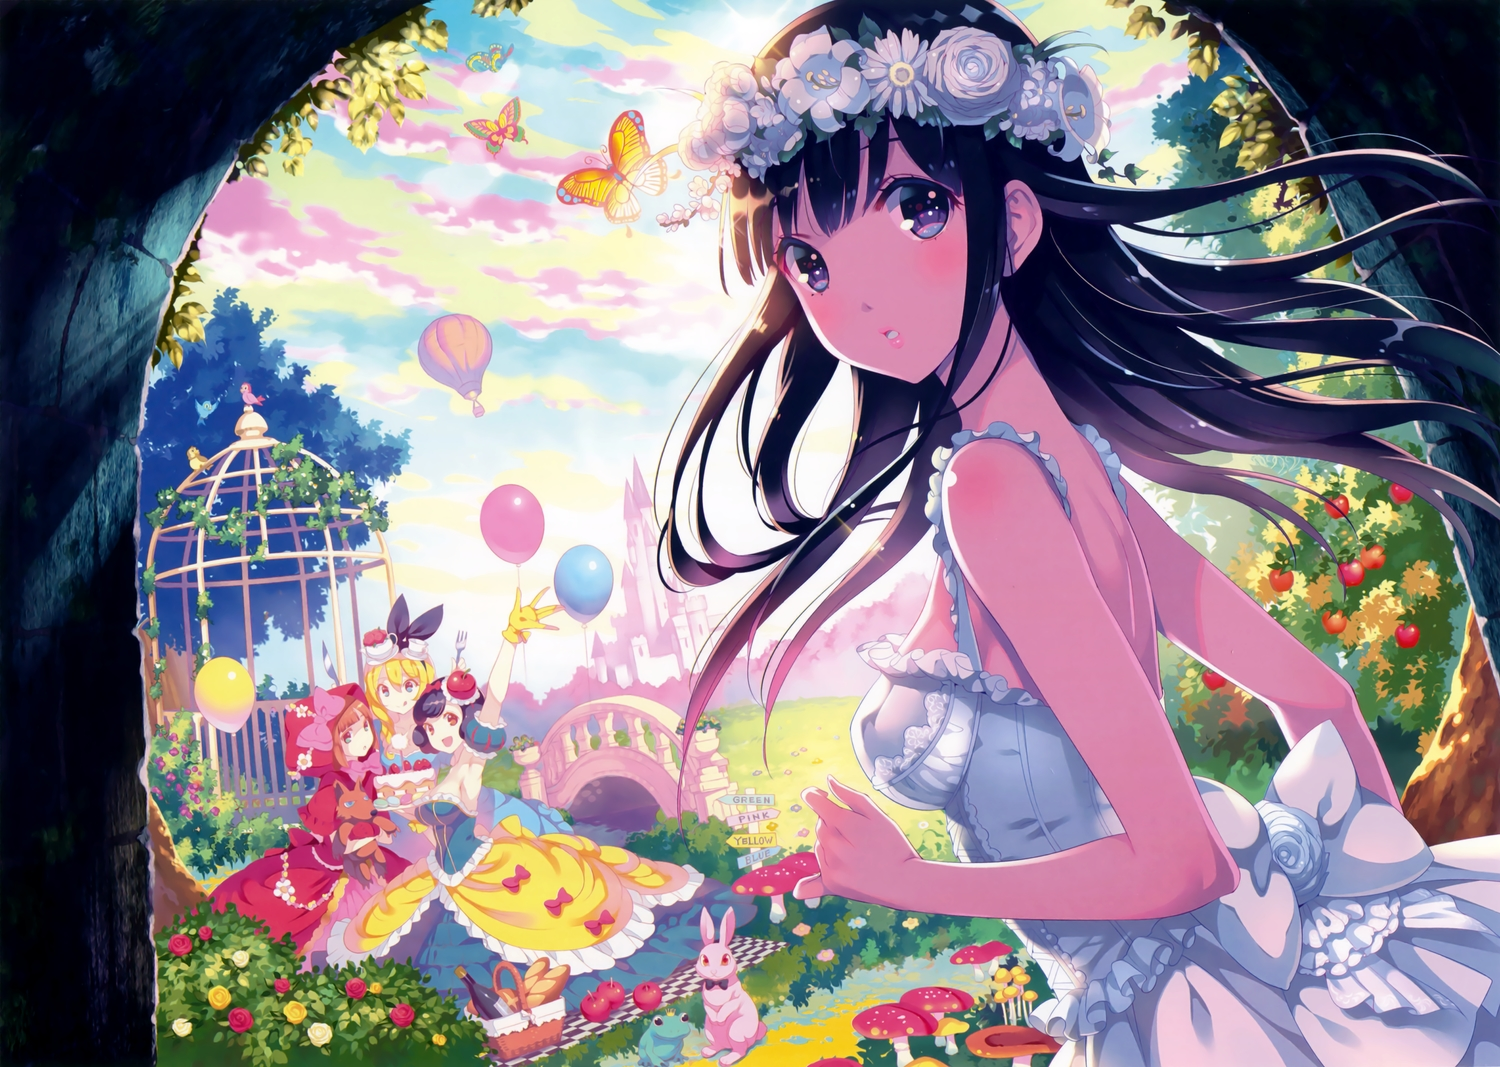 alice_in_wonderland alice_(wonderland) animal apple aqua_eyes bird black_hair blonde_hair blue_eyes blush bow breasts building butterfly cake clouds dress drink flowers food frog fruit gloves grass headdress leaves little_red_riding_hood long_hair nishimura_eri no_bra orange_eyes orange_hair original purple_hair rabbit red_riding_hood rose scan short_hair snow_white snow_white_and_the_seven_dwarfs tree